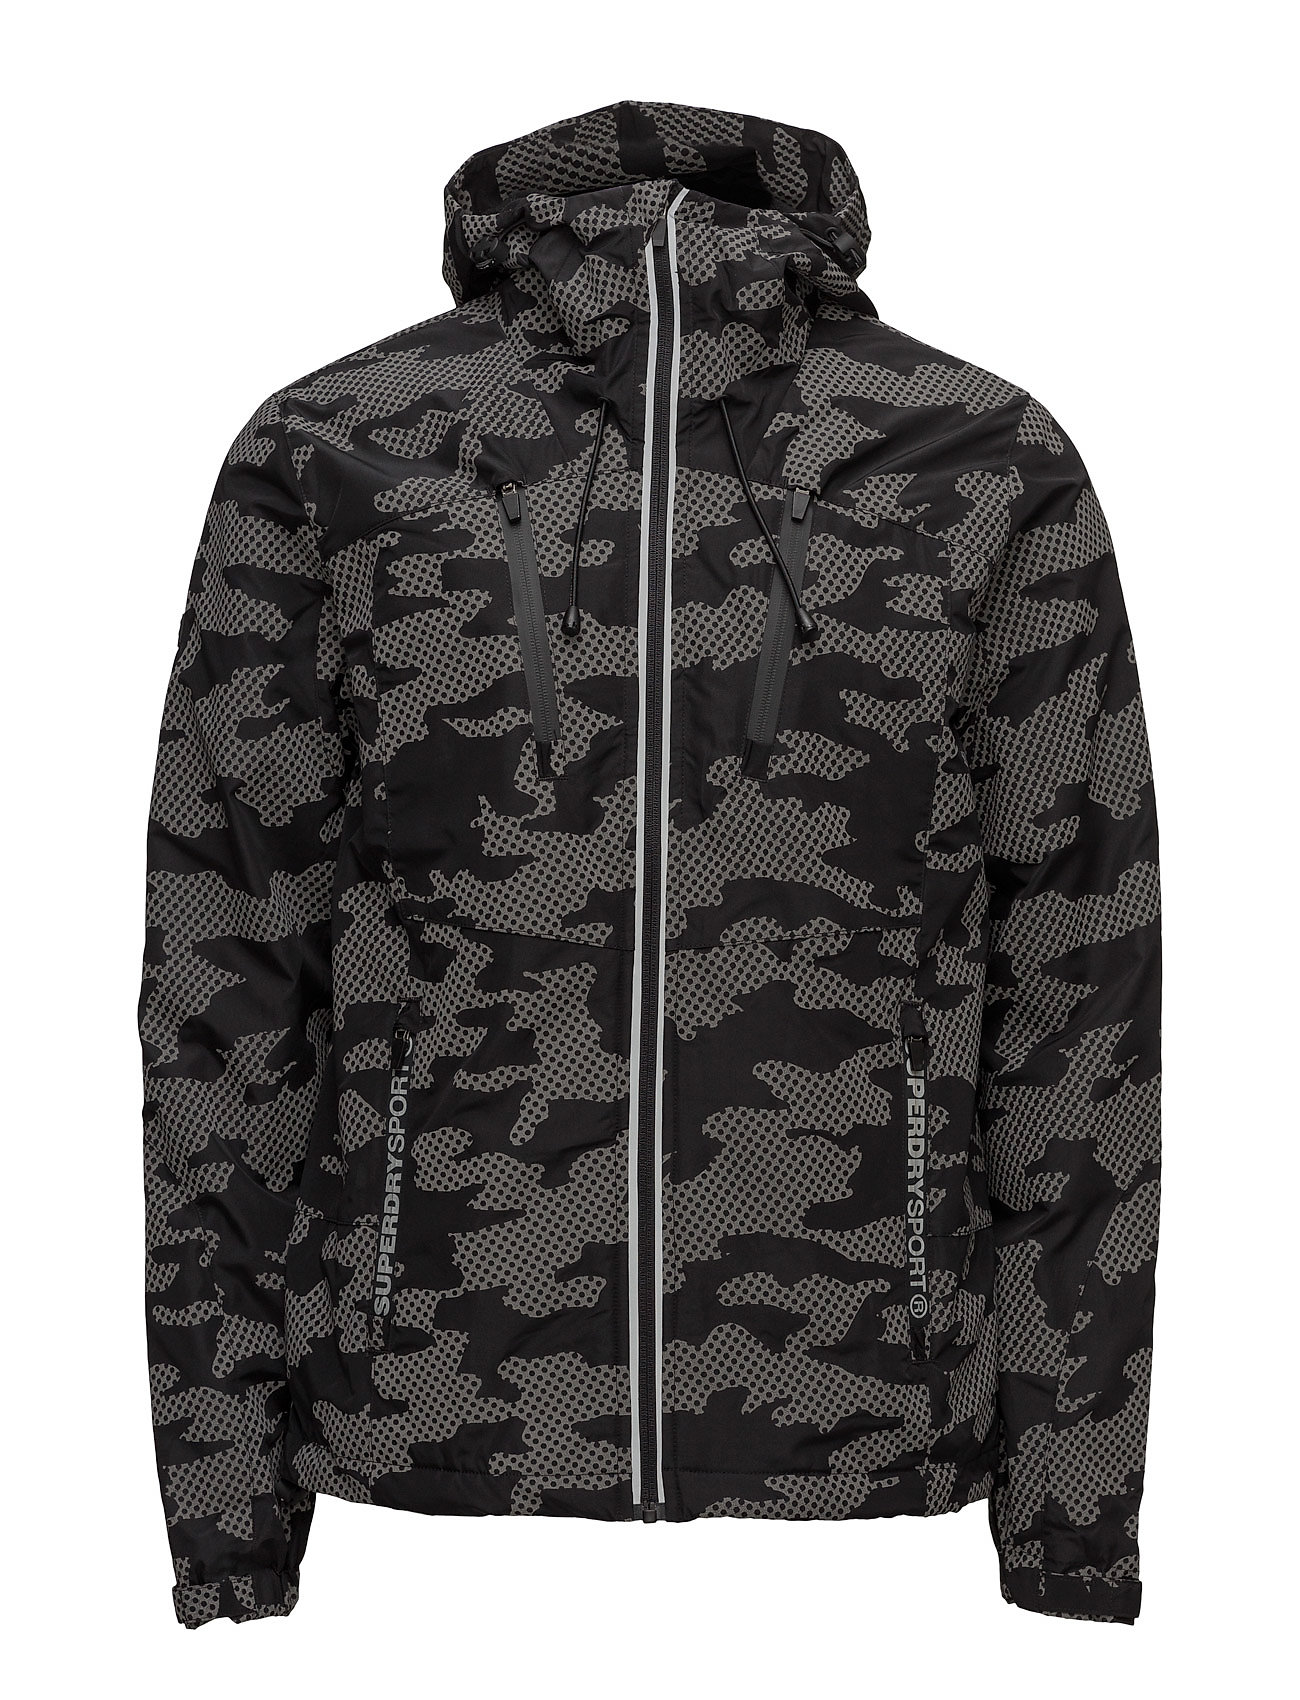 Superdry Sport TRAINING TECH CAGOULE - BLACK/REFLECTIVE CAMO